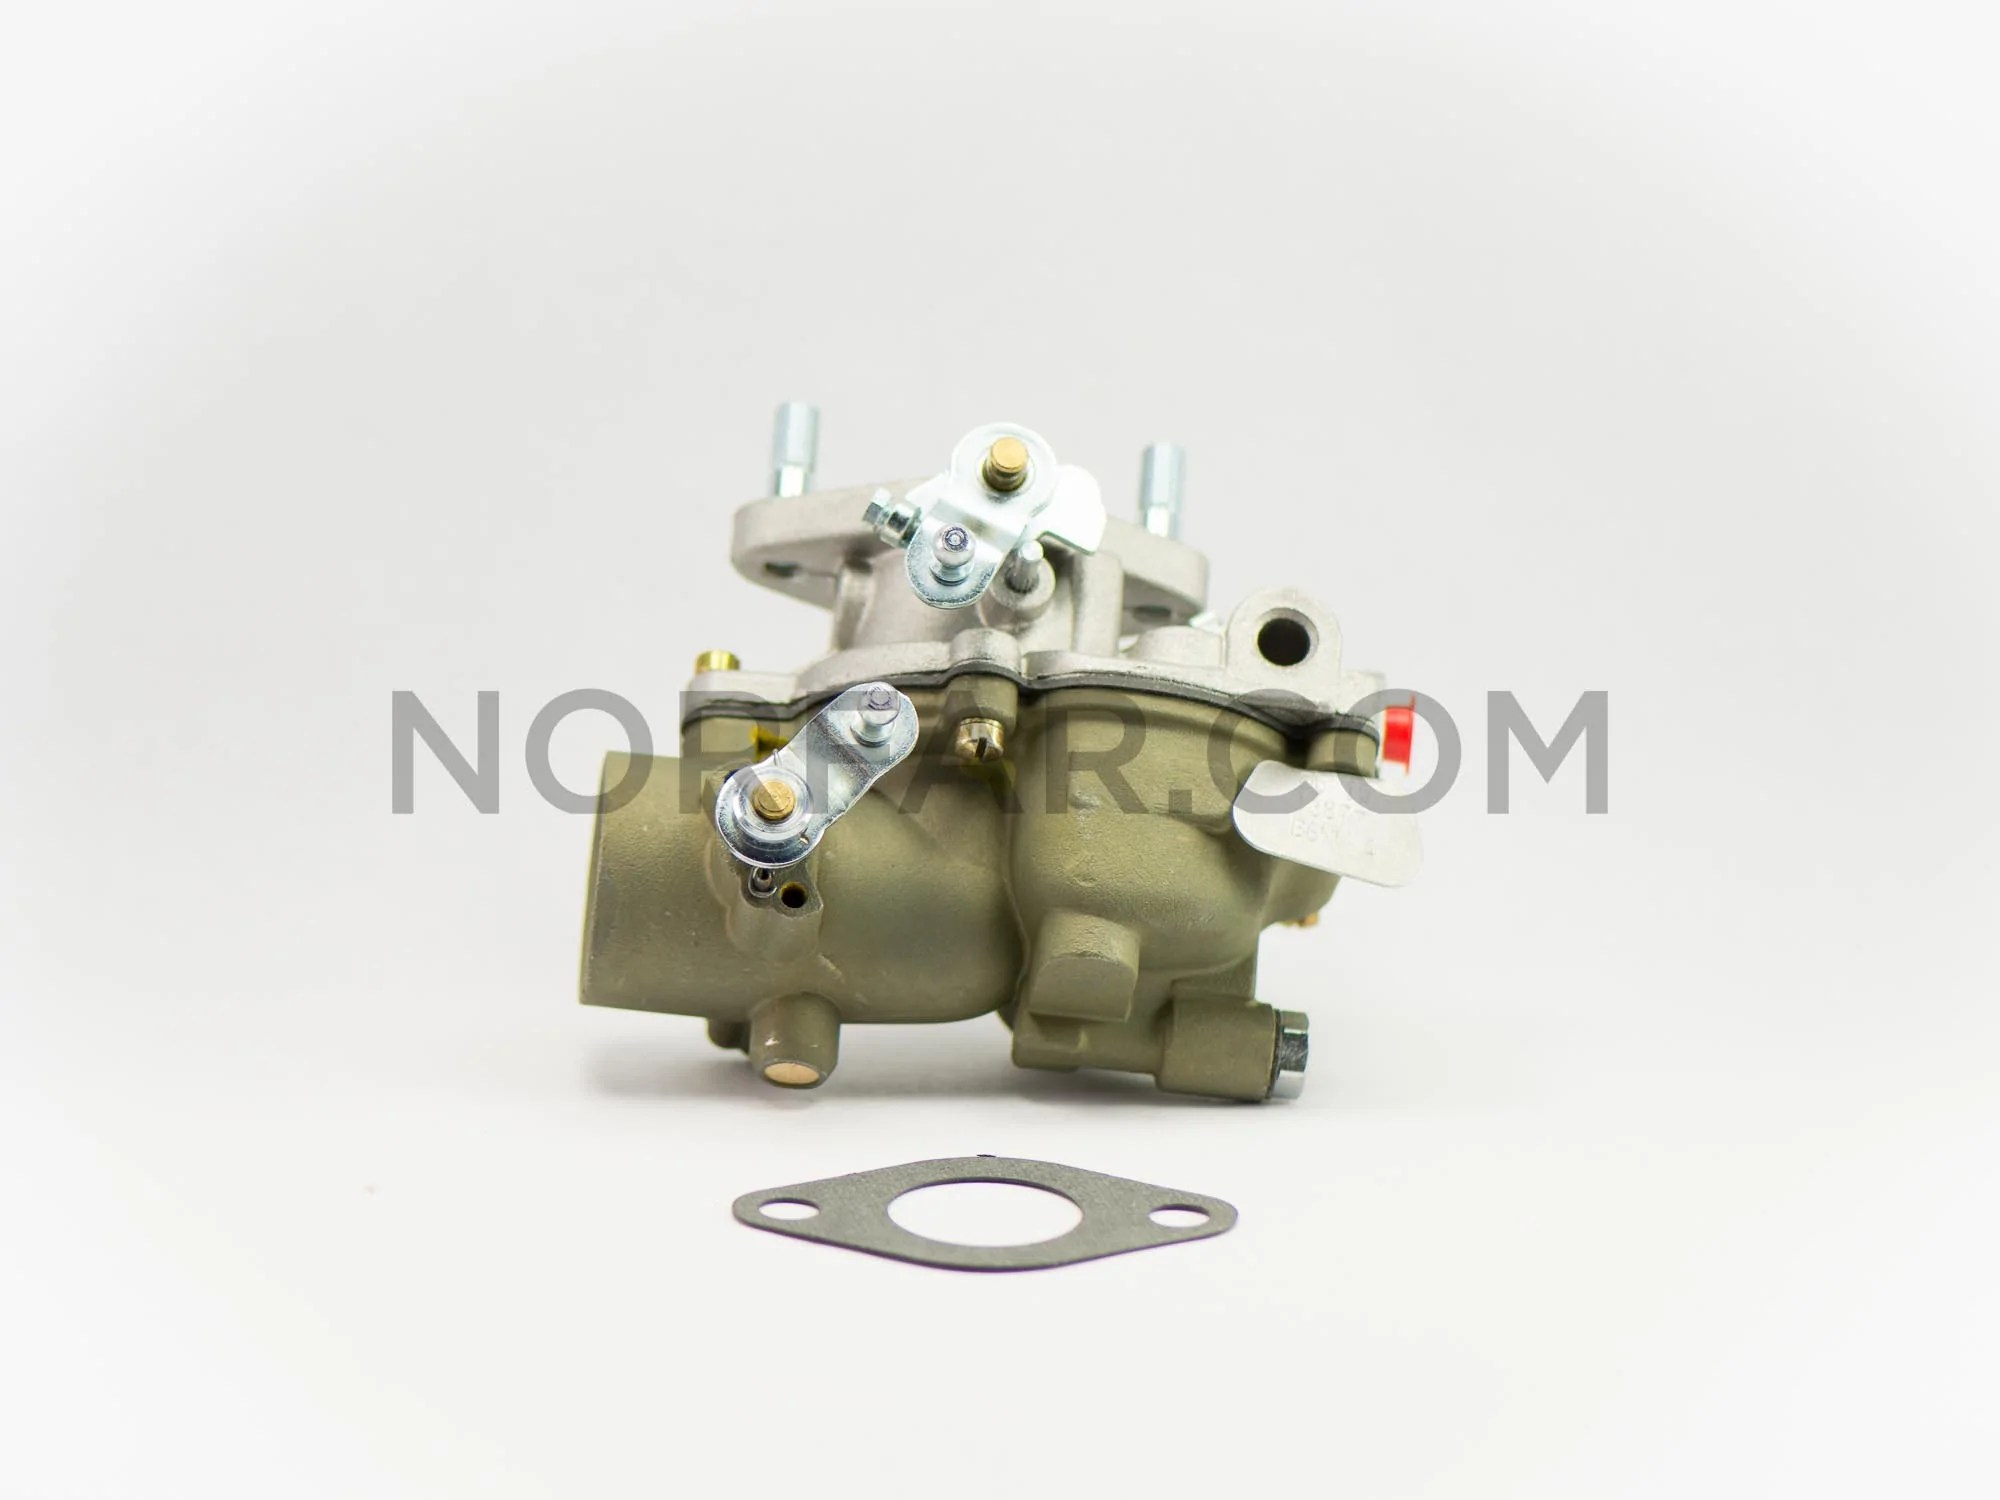 zenith 13877 carburetor ford b6nn9510 a norfar com farmall super h carburetor diagram zenith 13877 carburetor [ 2000 x 1500 Pixel ]